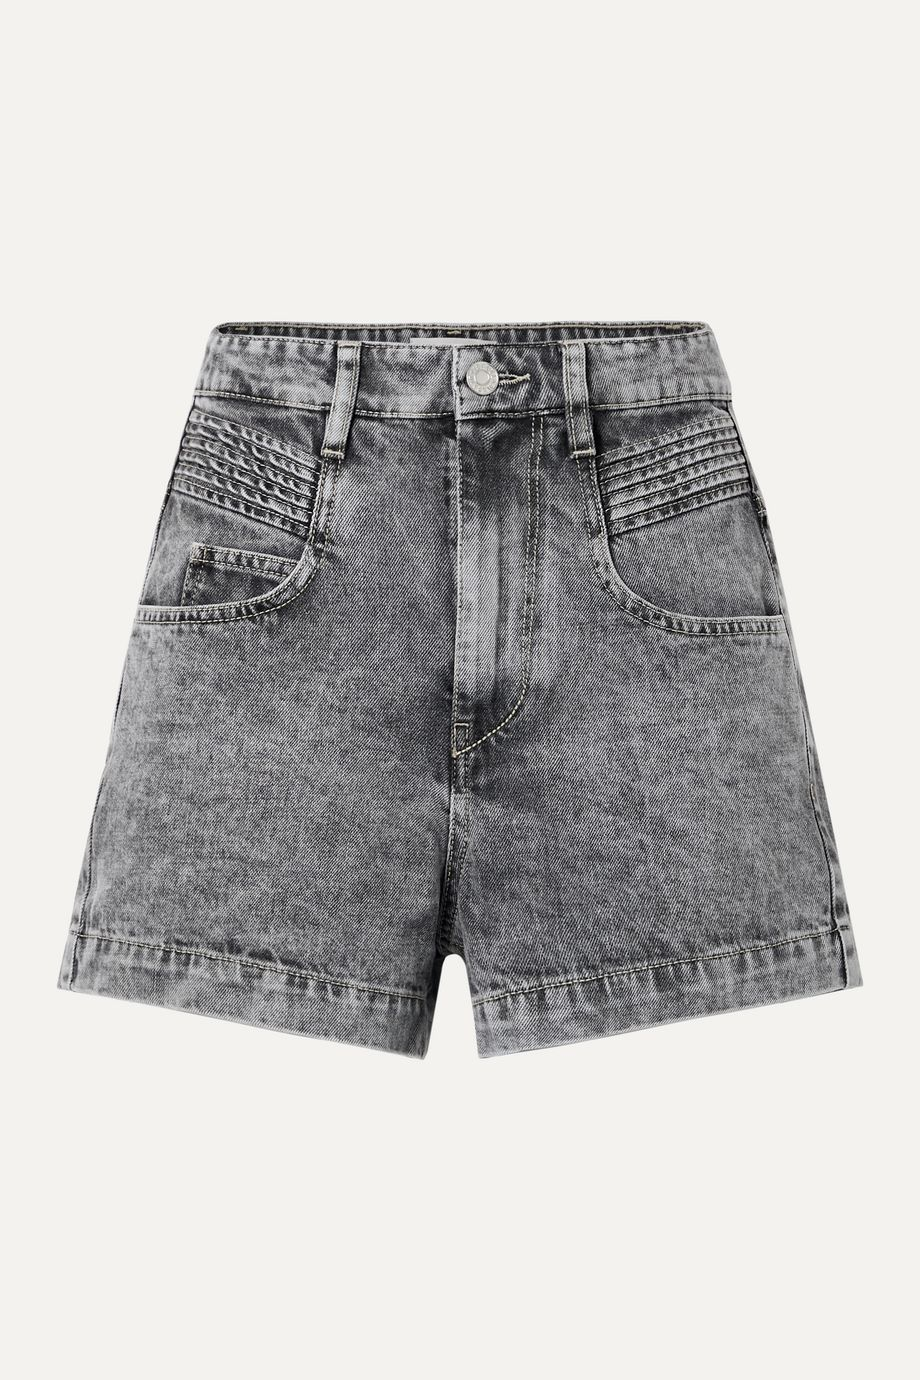 Isabel Marant Étoile Hiana acid-wash denim shorts